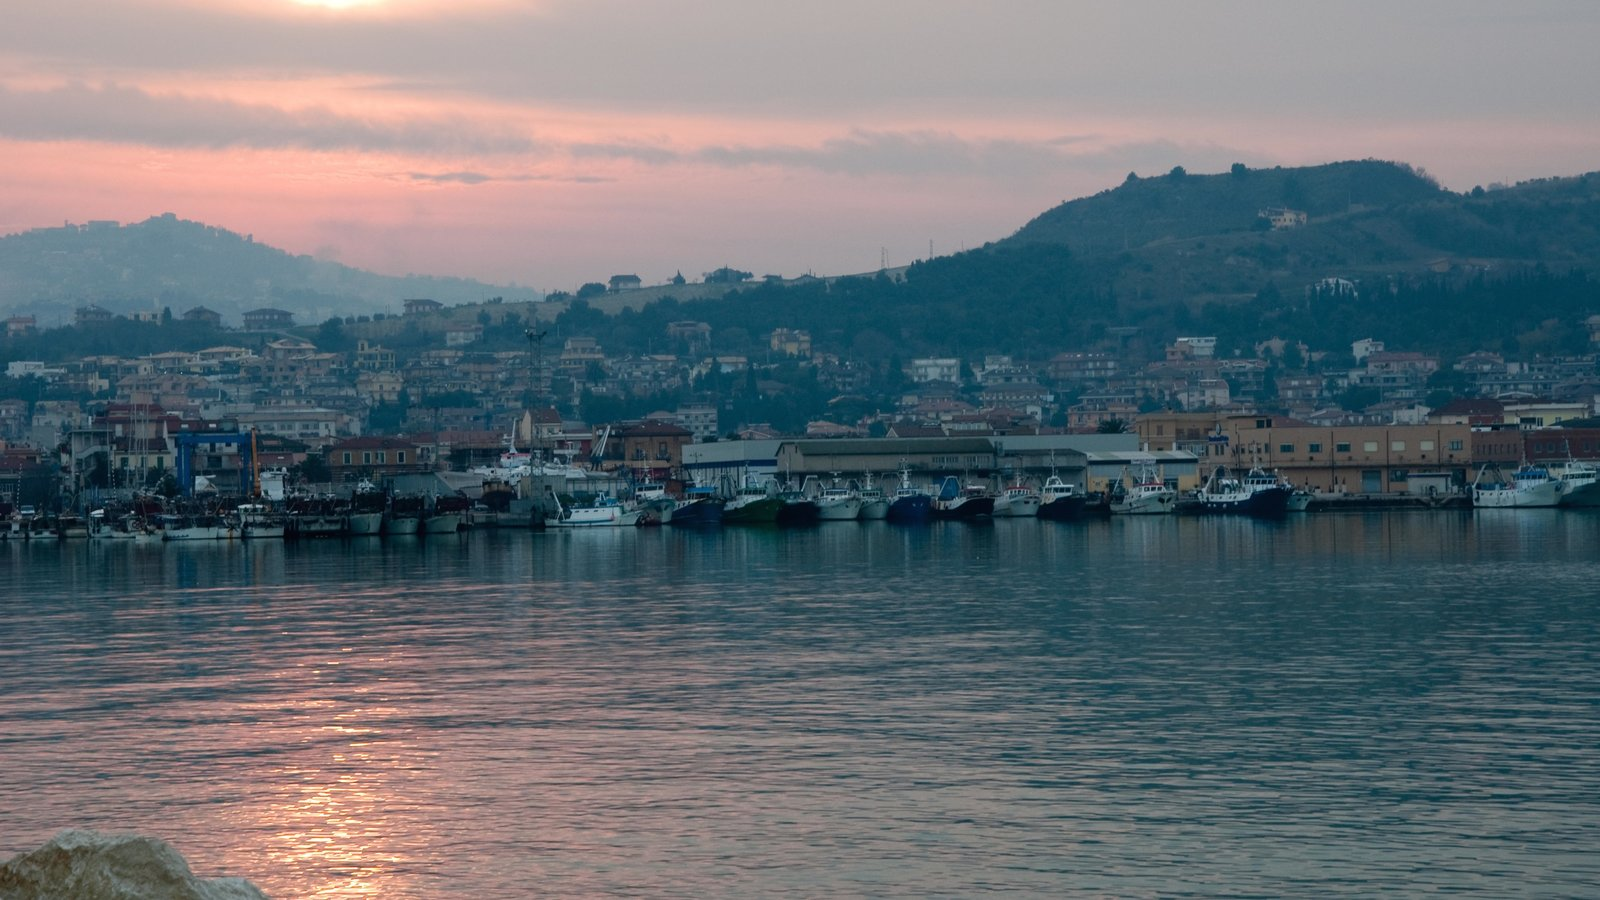 San Benedetto del Tronto which includes a coastal town, general coastal views and a sunset